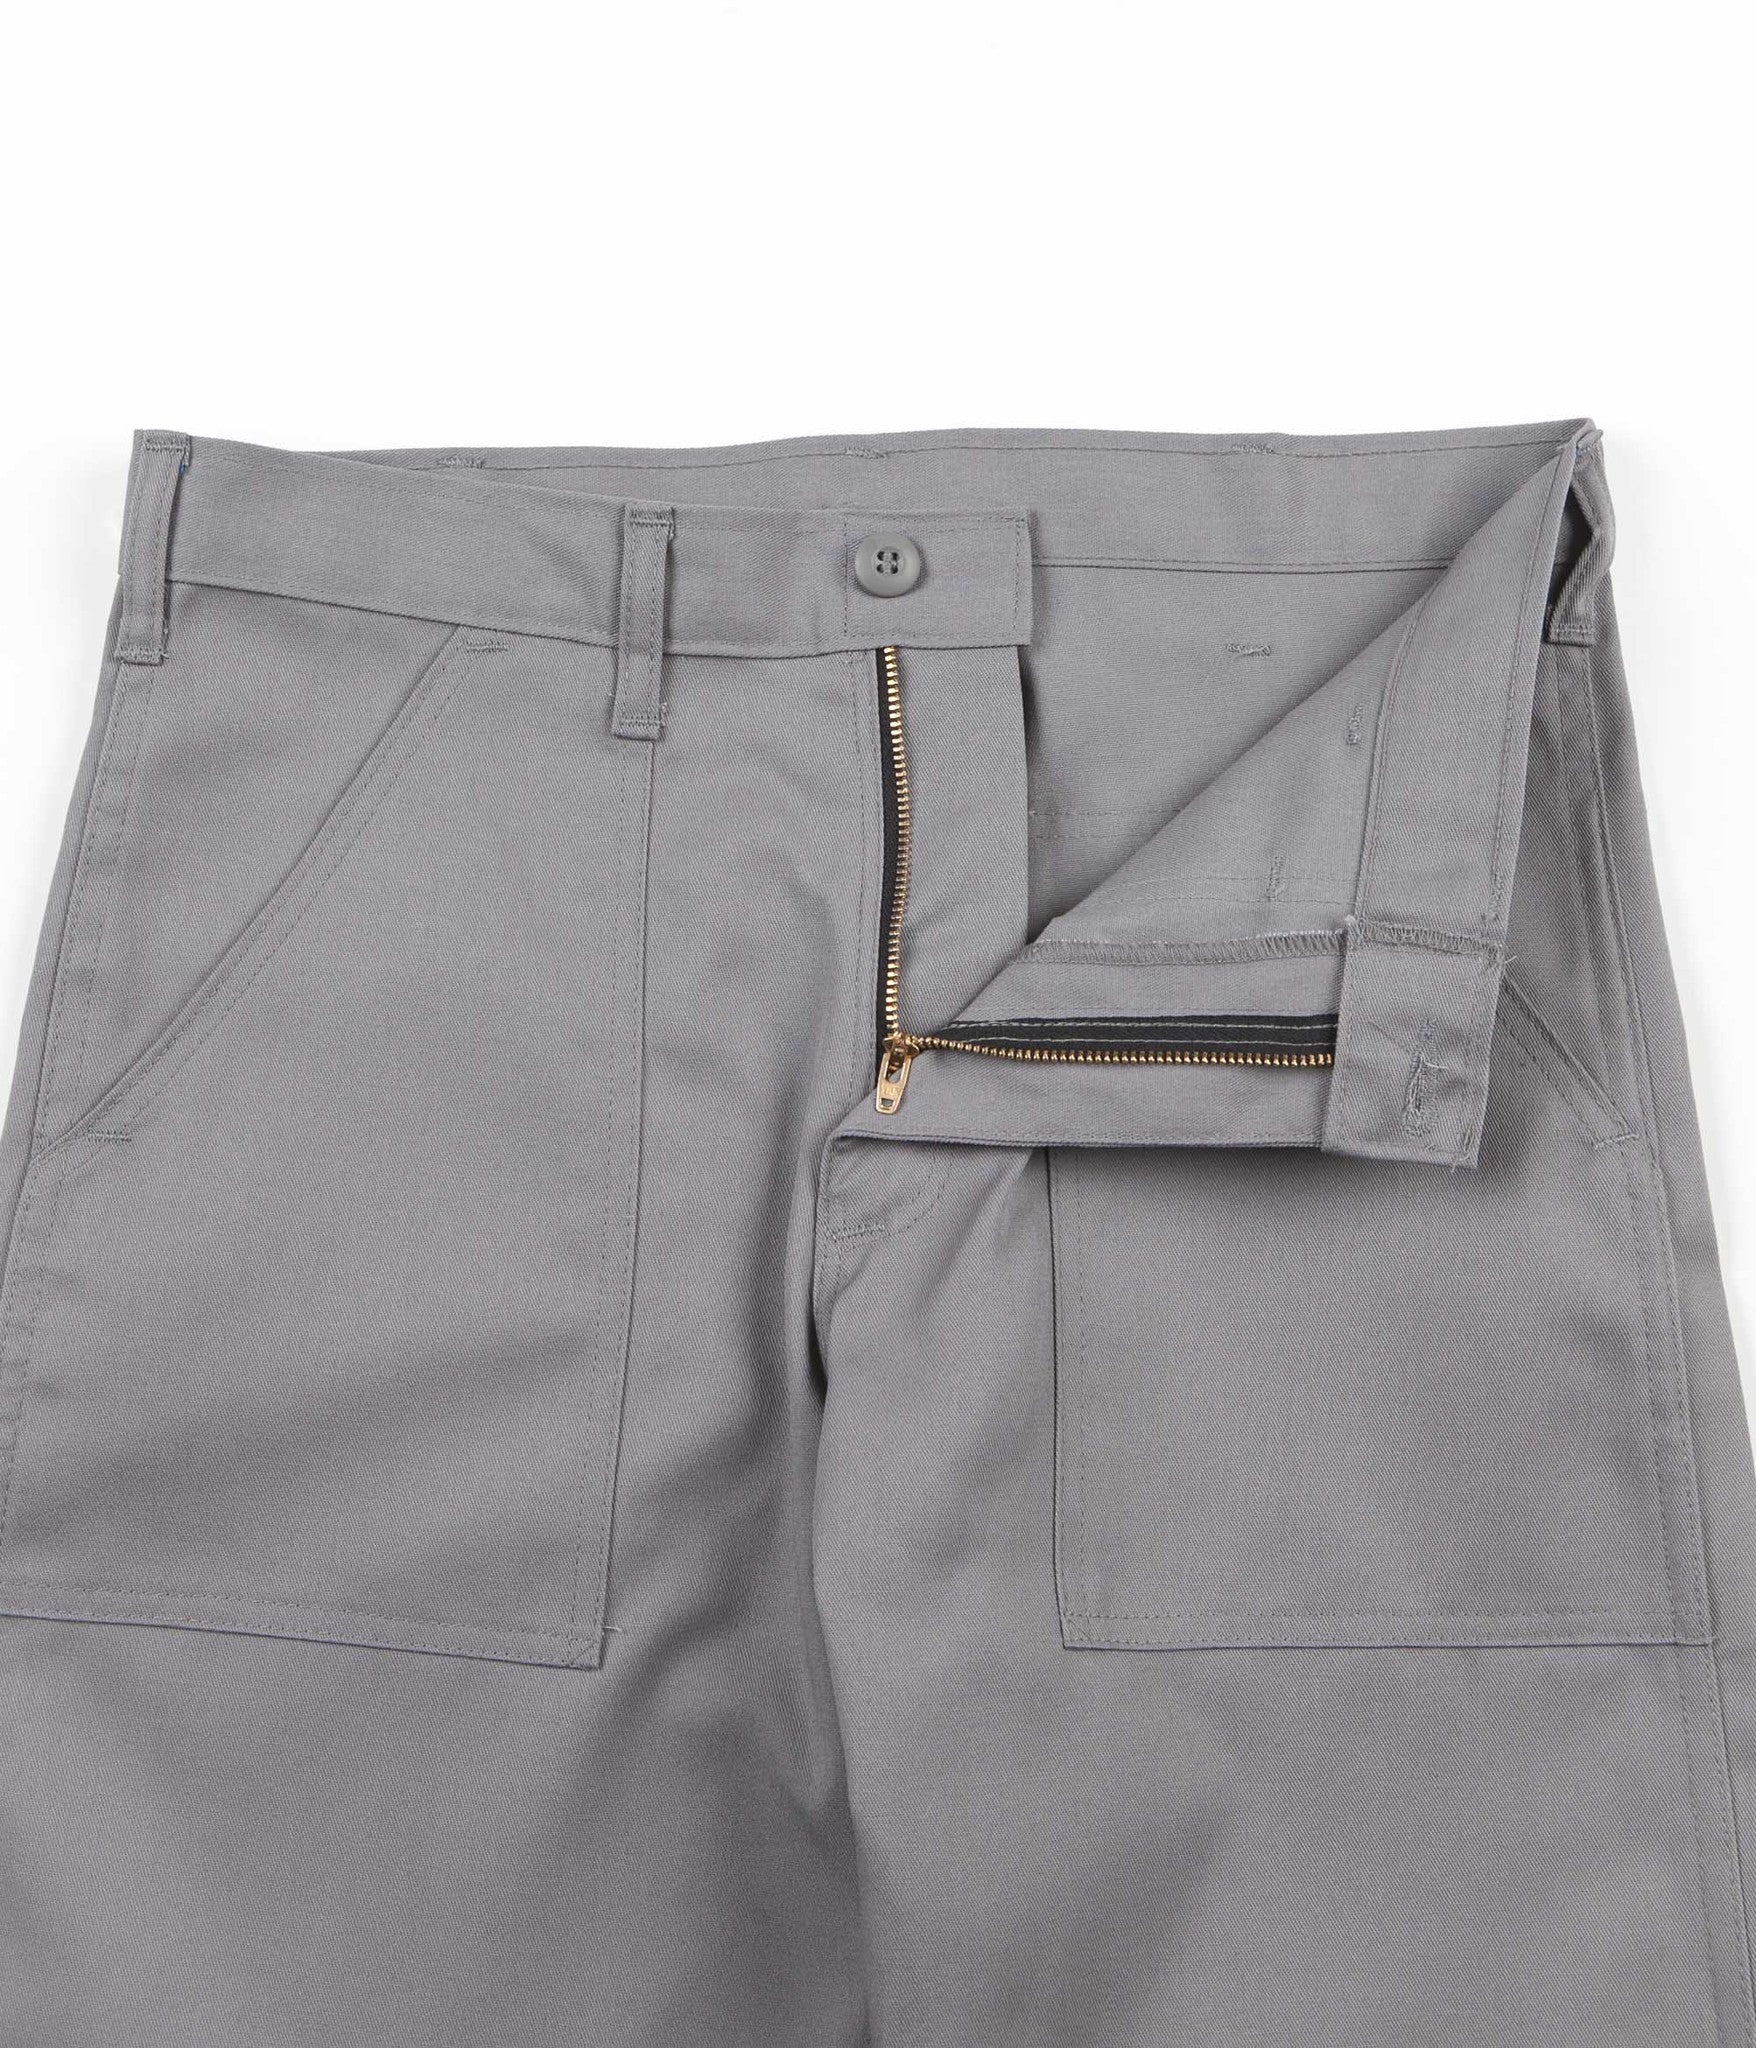 Stan Ray Slim Fit 4 Pocket Fatigue Trousers - Prison Grey